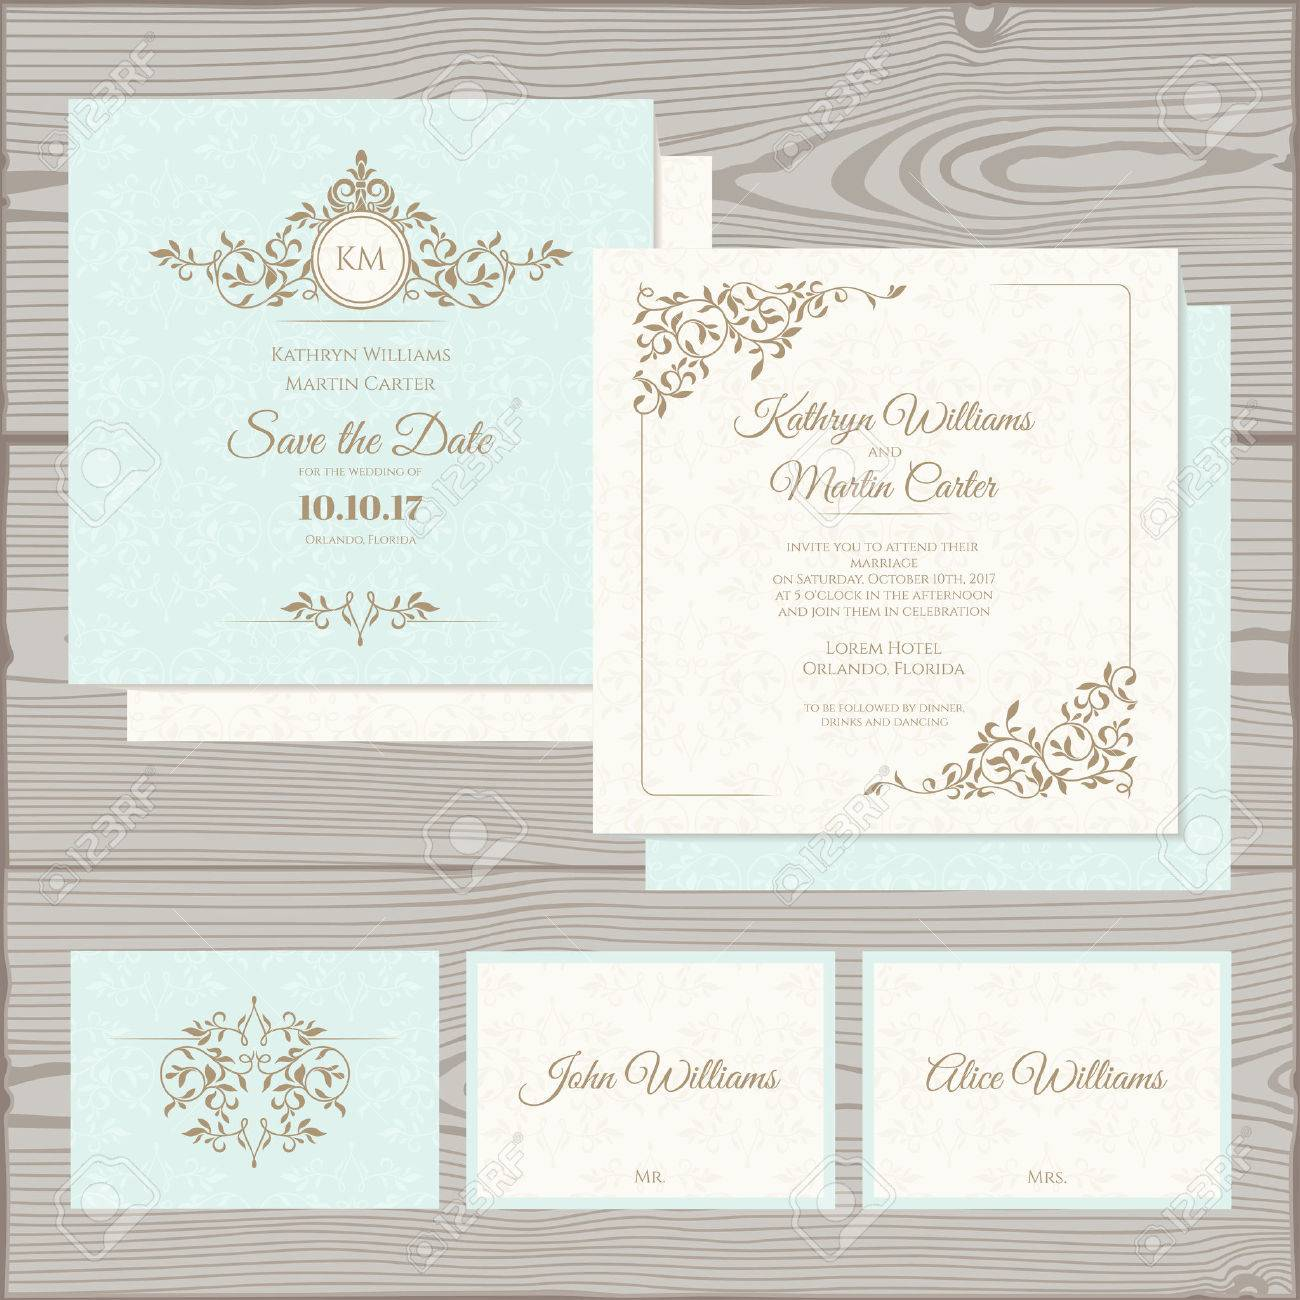 Wedding invitation, save the date card, place card. - 50020819